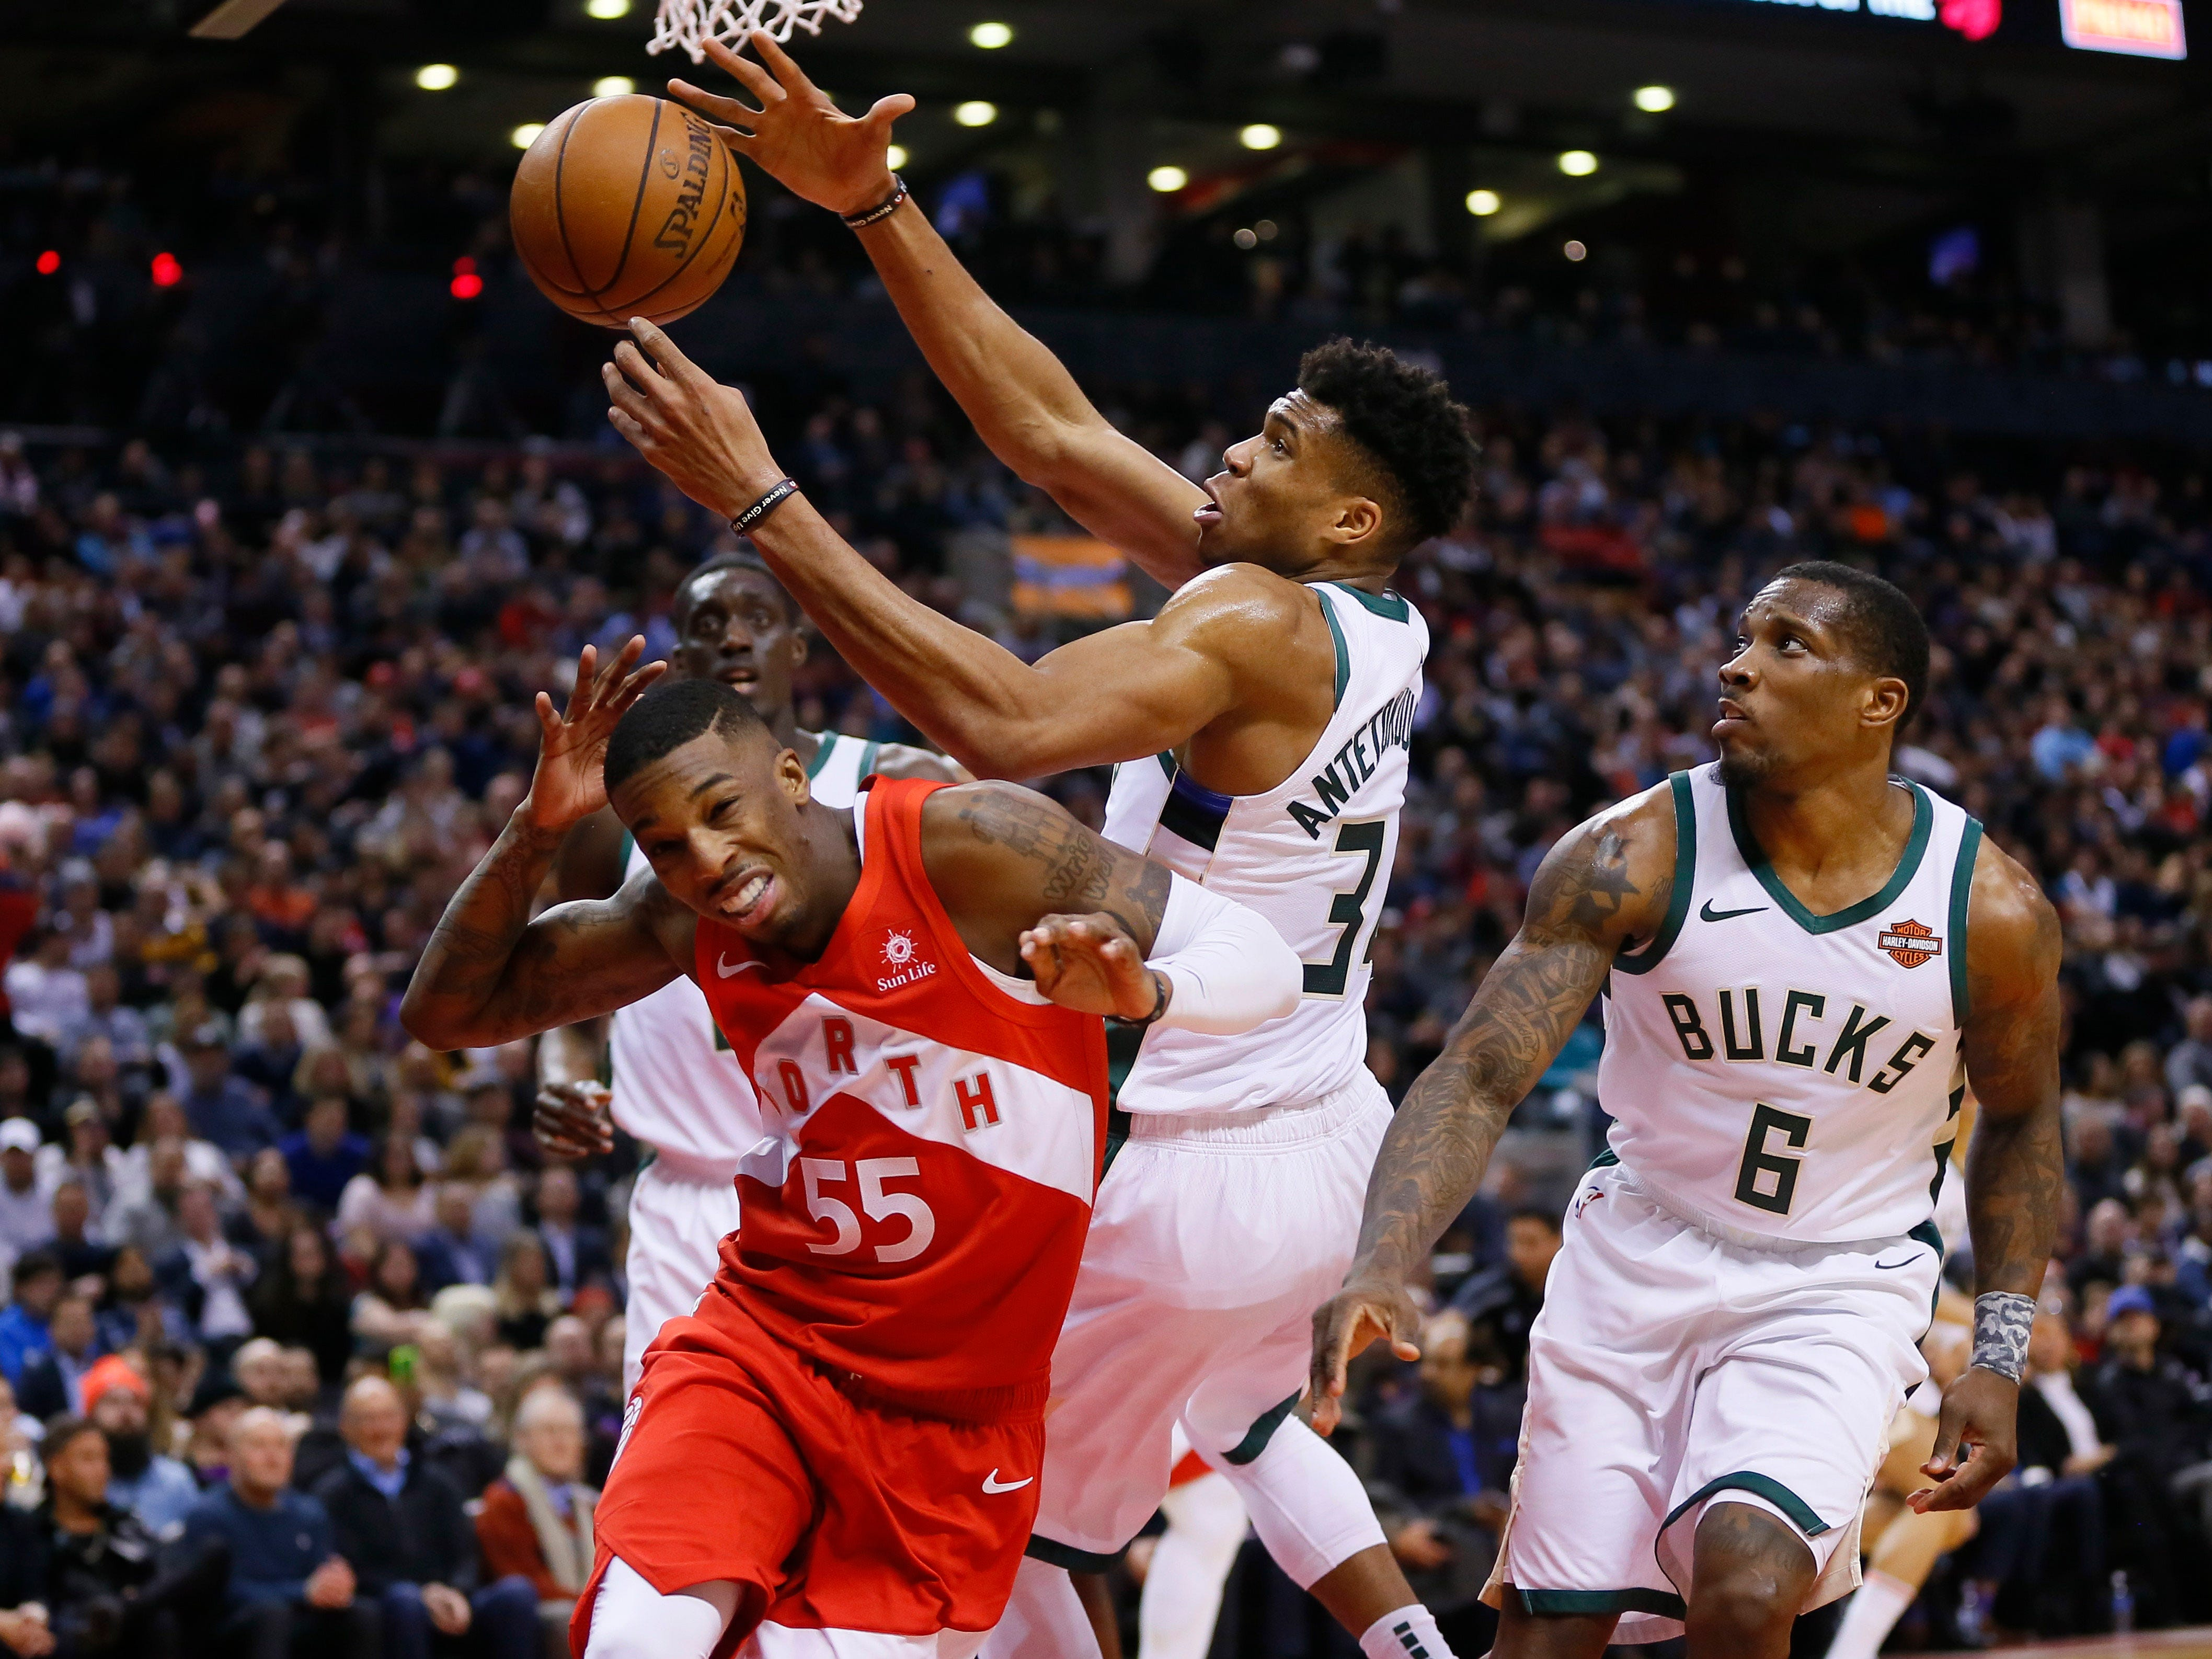 Bucks forward Giannis Antetokounmpo takes a rebound away from Raptors guard Delon Wright as Eric Bledsoe  looks on during the first half Thursday.